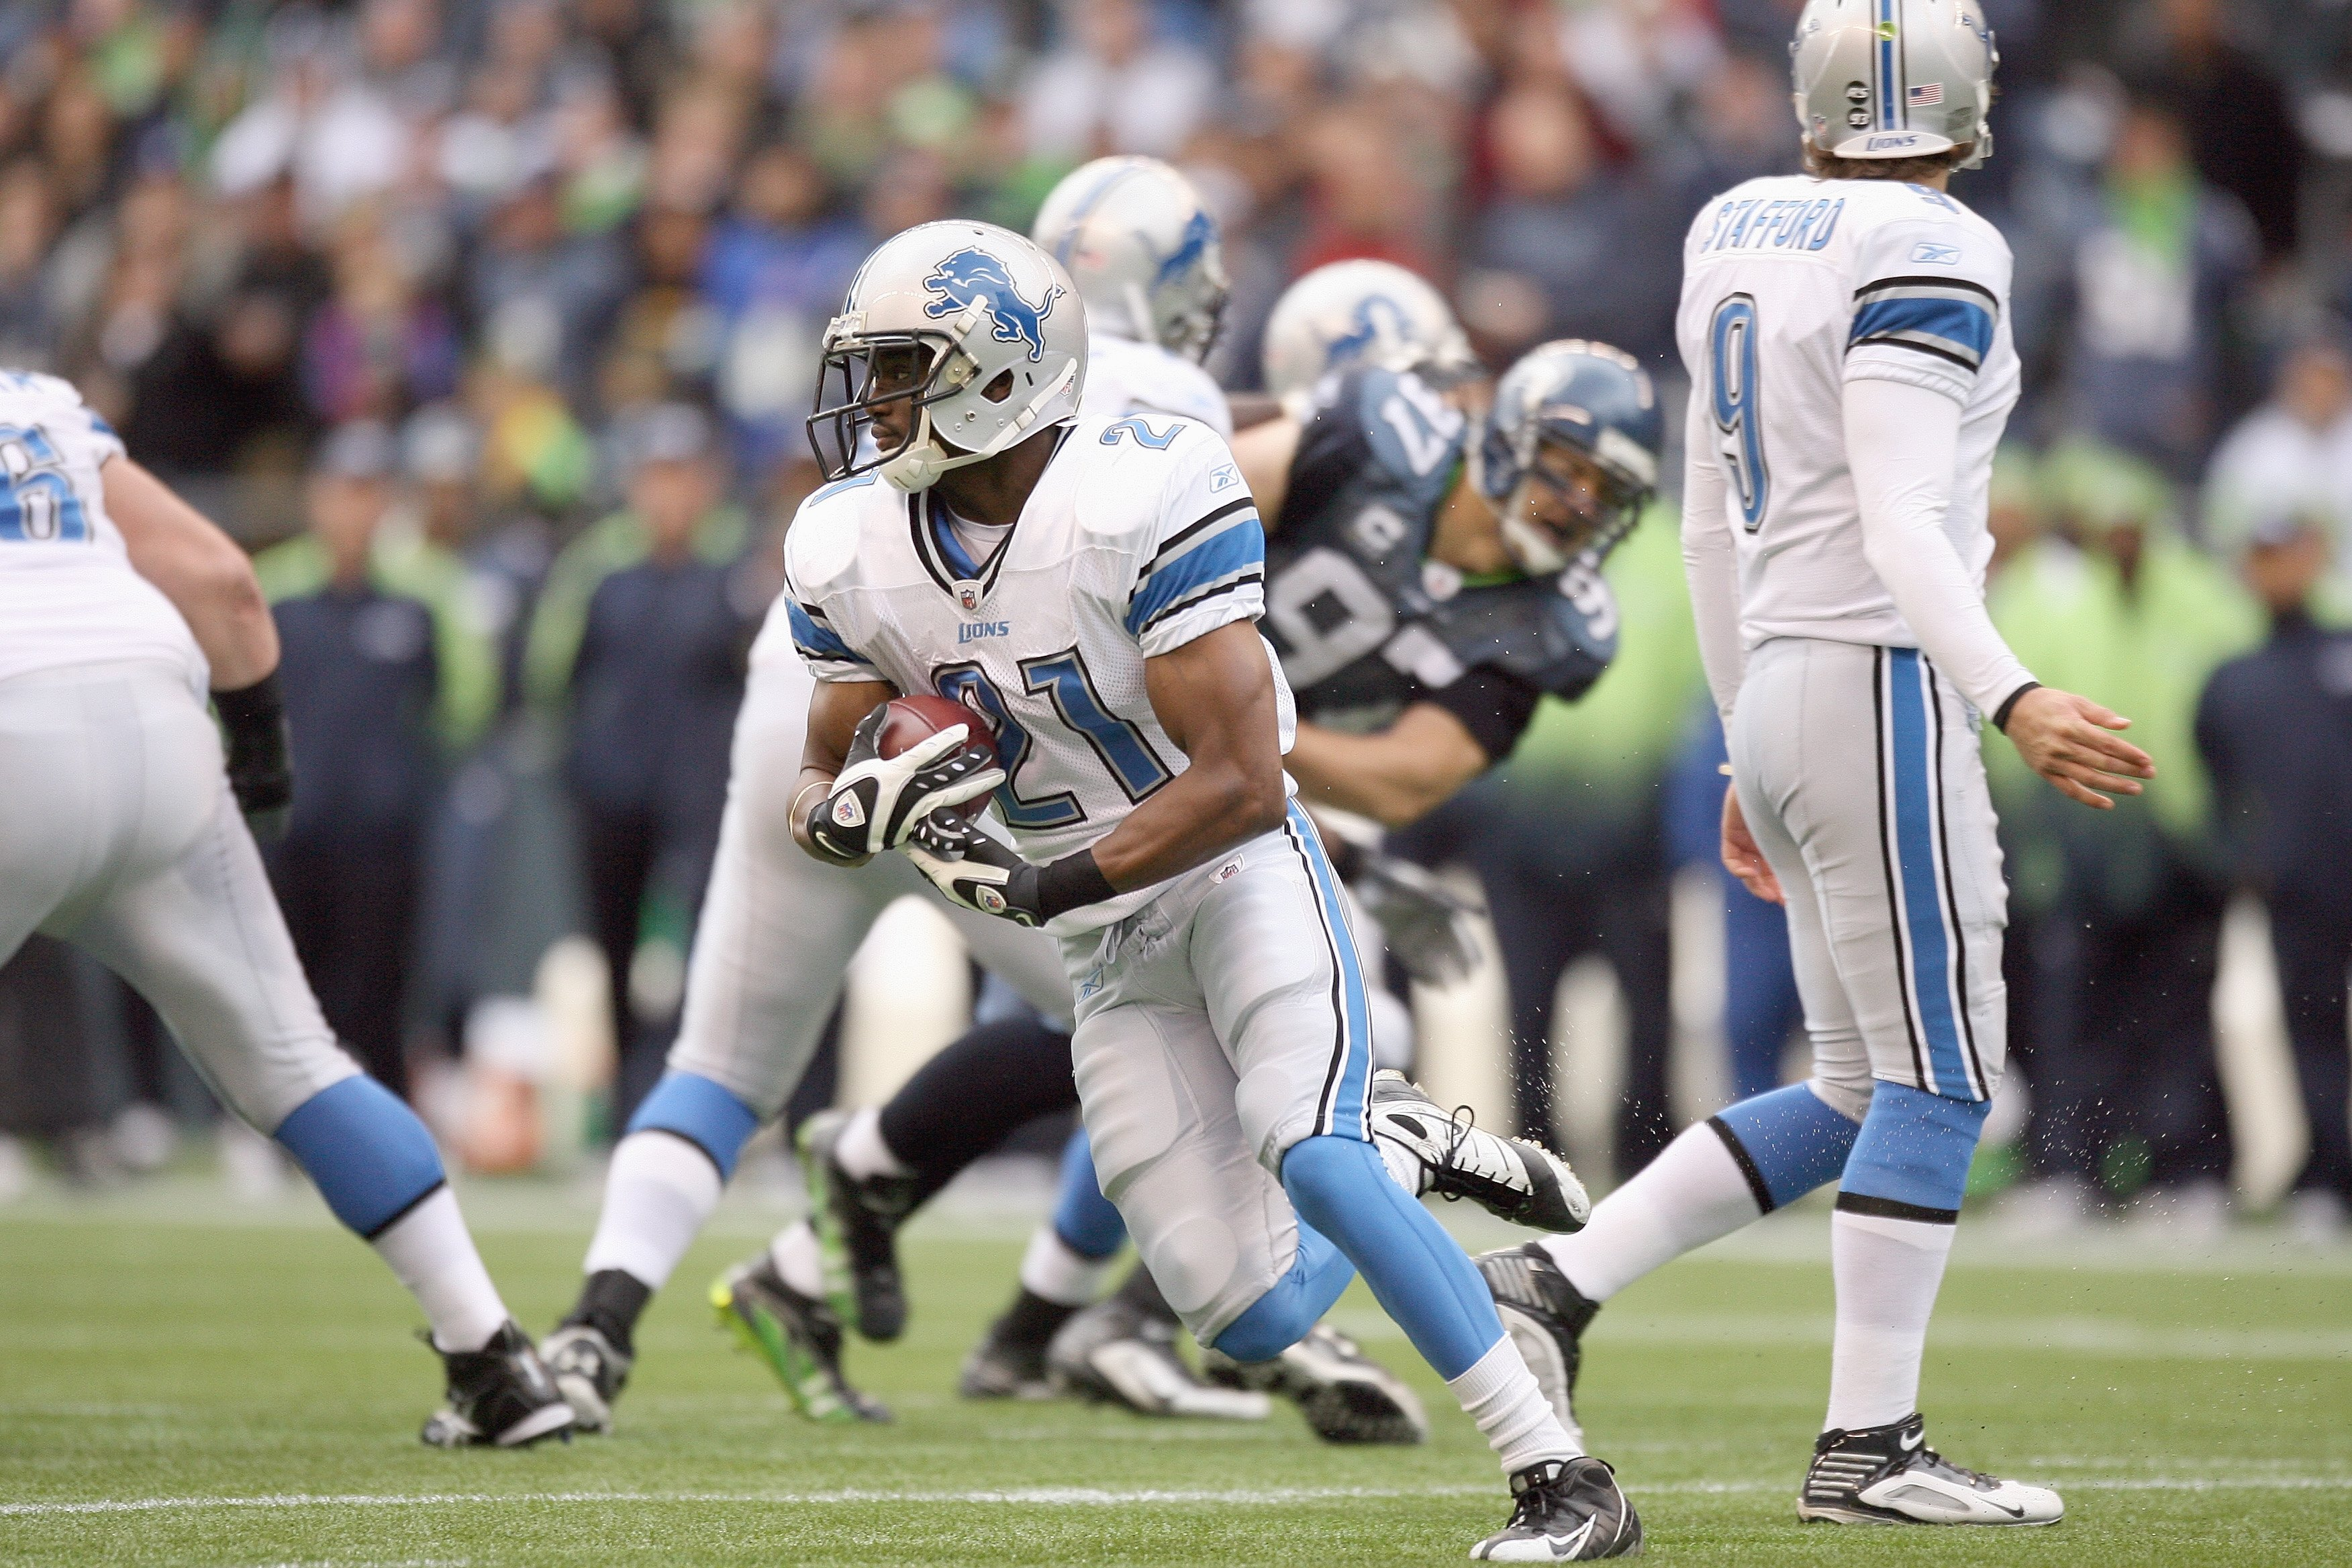 SEATTLE - NOVEMBER 08:  Aaron Brown #21 of the Detroit Lions carries the ball during the game against the Seattle Seahawks on November 8, 2009 at Qwest Field in Seattle, Washington. The Seahawks defeated the Lions 32-20. (Photo by Otto Greule Jr/Getty Ima